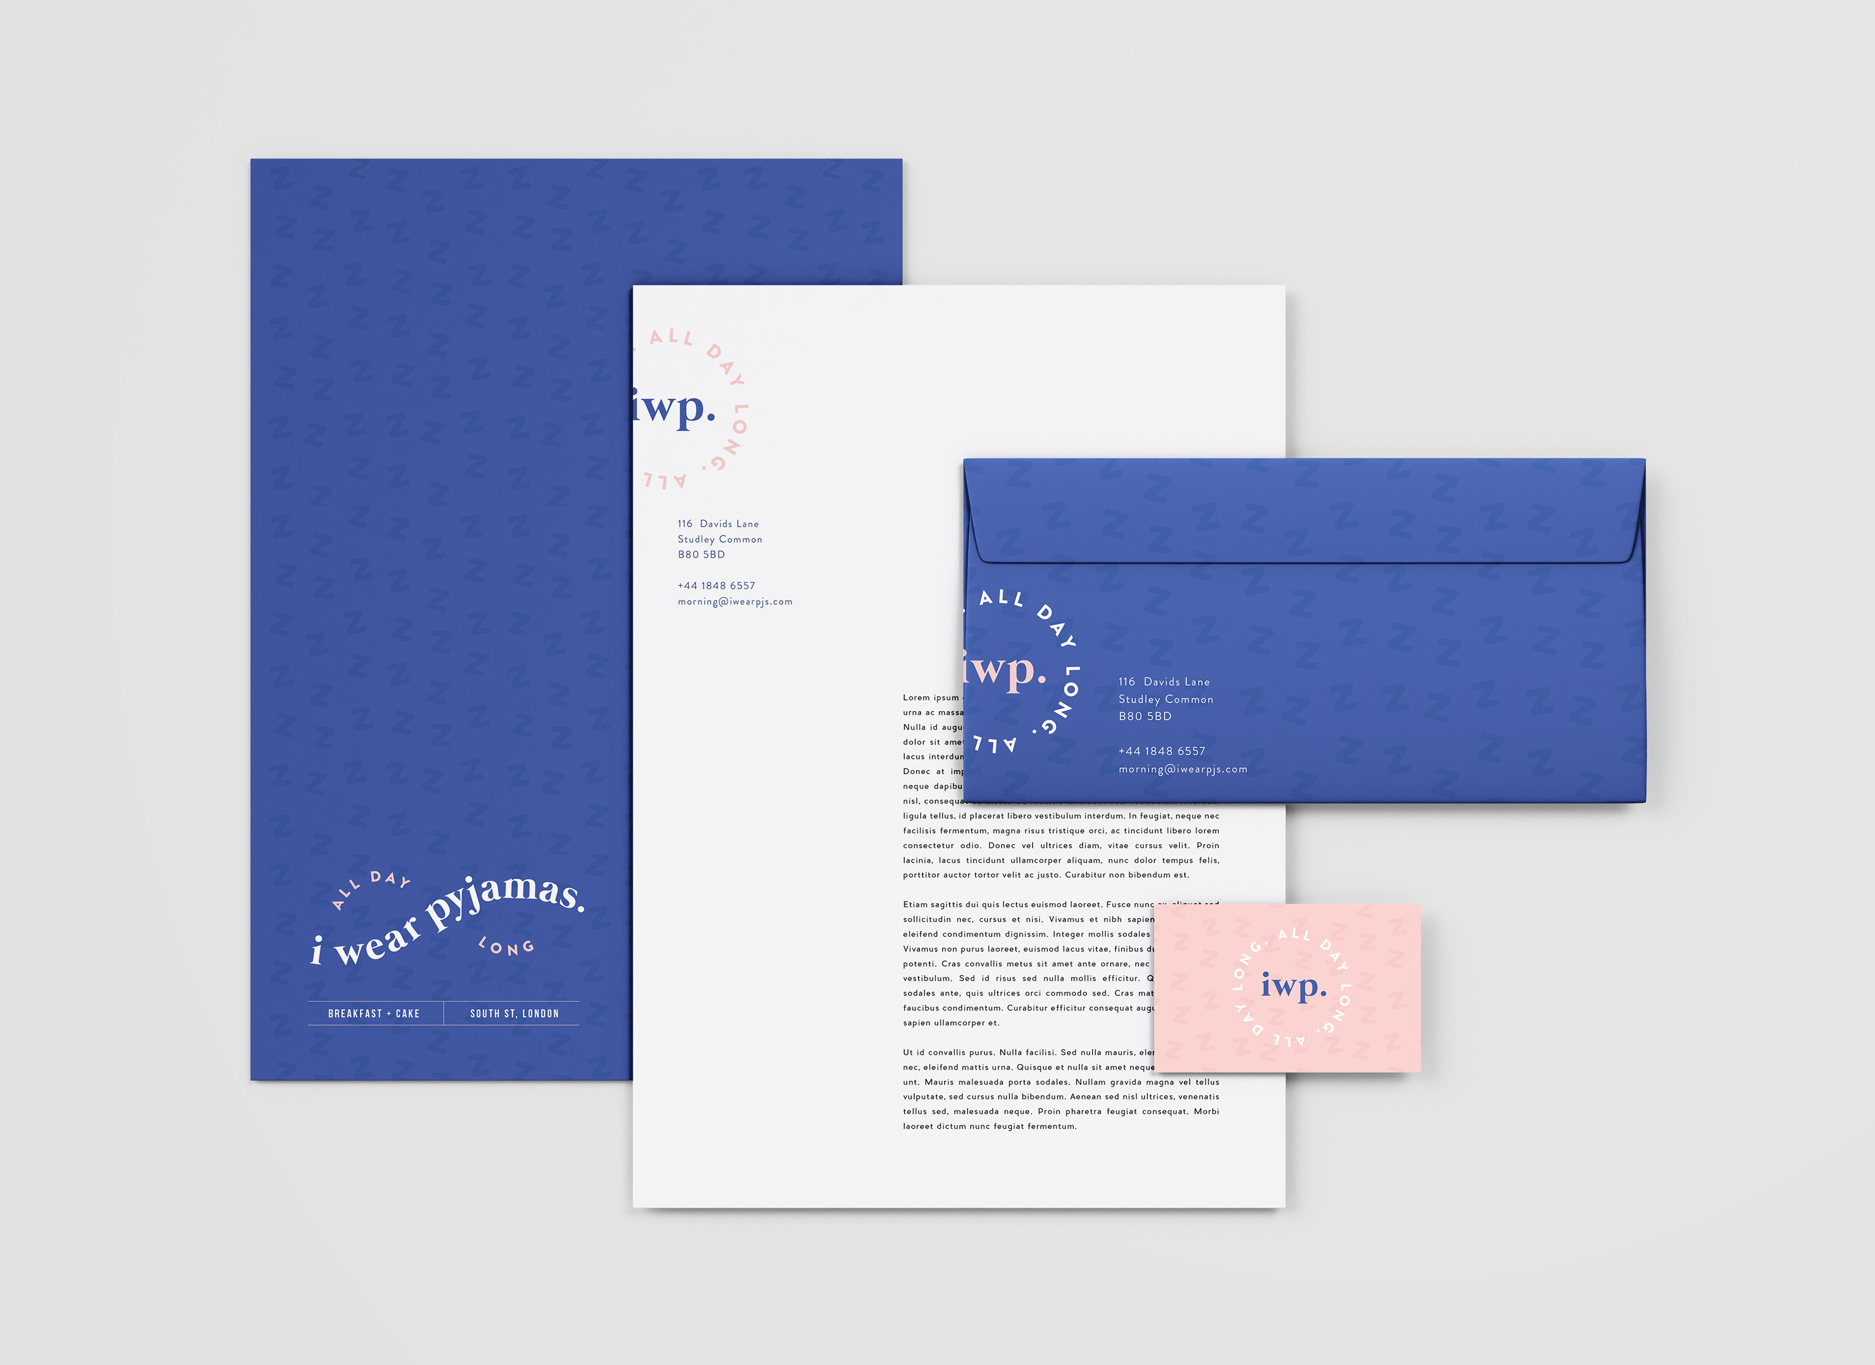 Stationery design for i wear pyjamas, a self-confessed breakfast & cake bar  - Designed by Wiltshire-based graphic designer, Kaye Huett